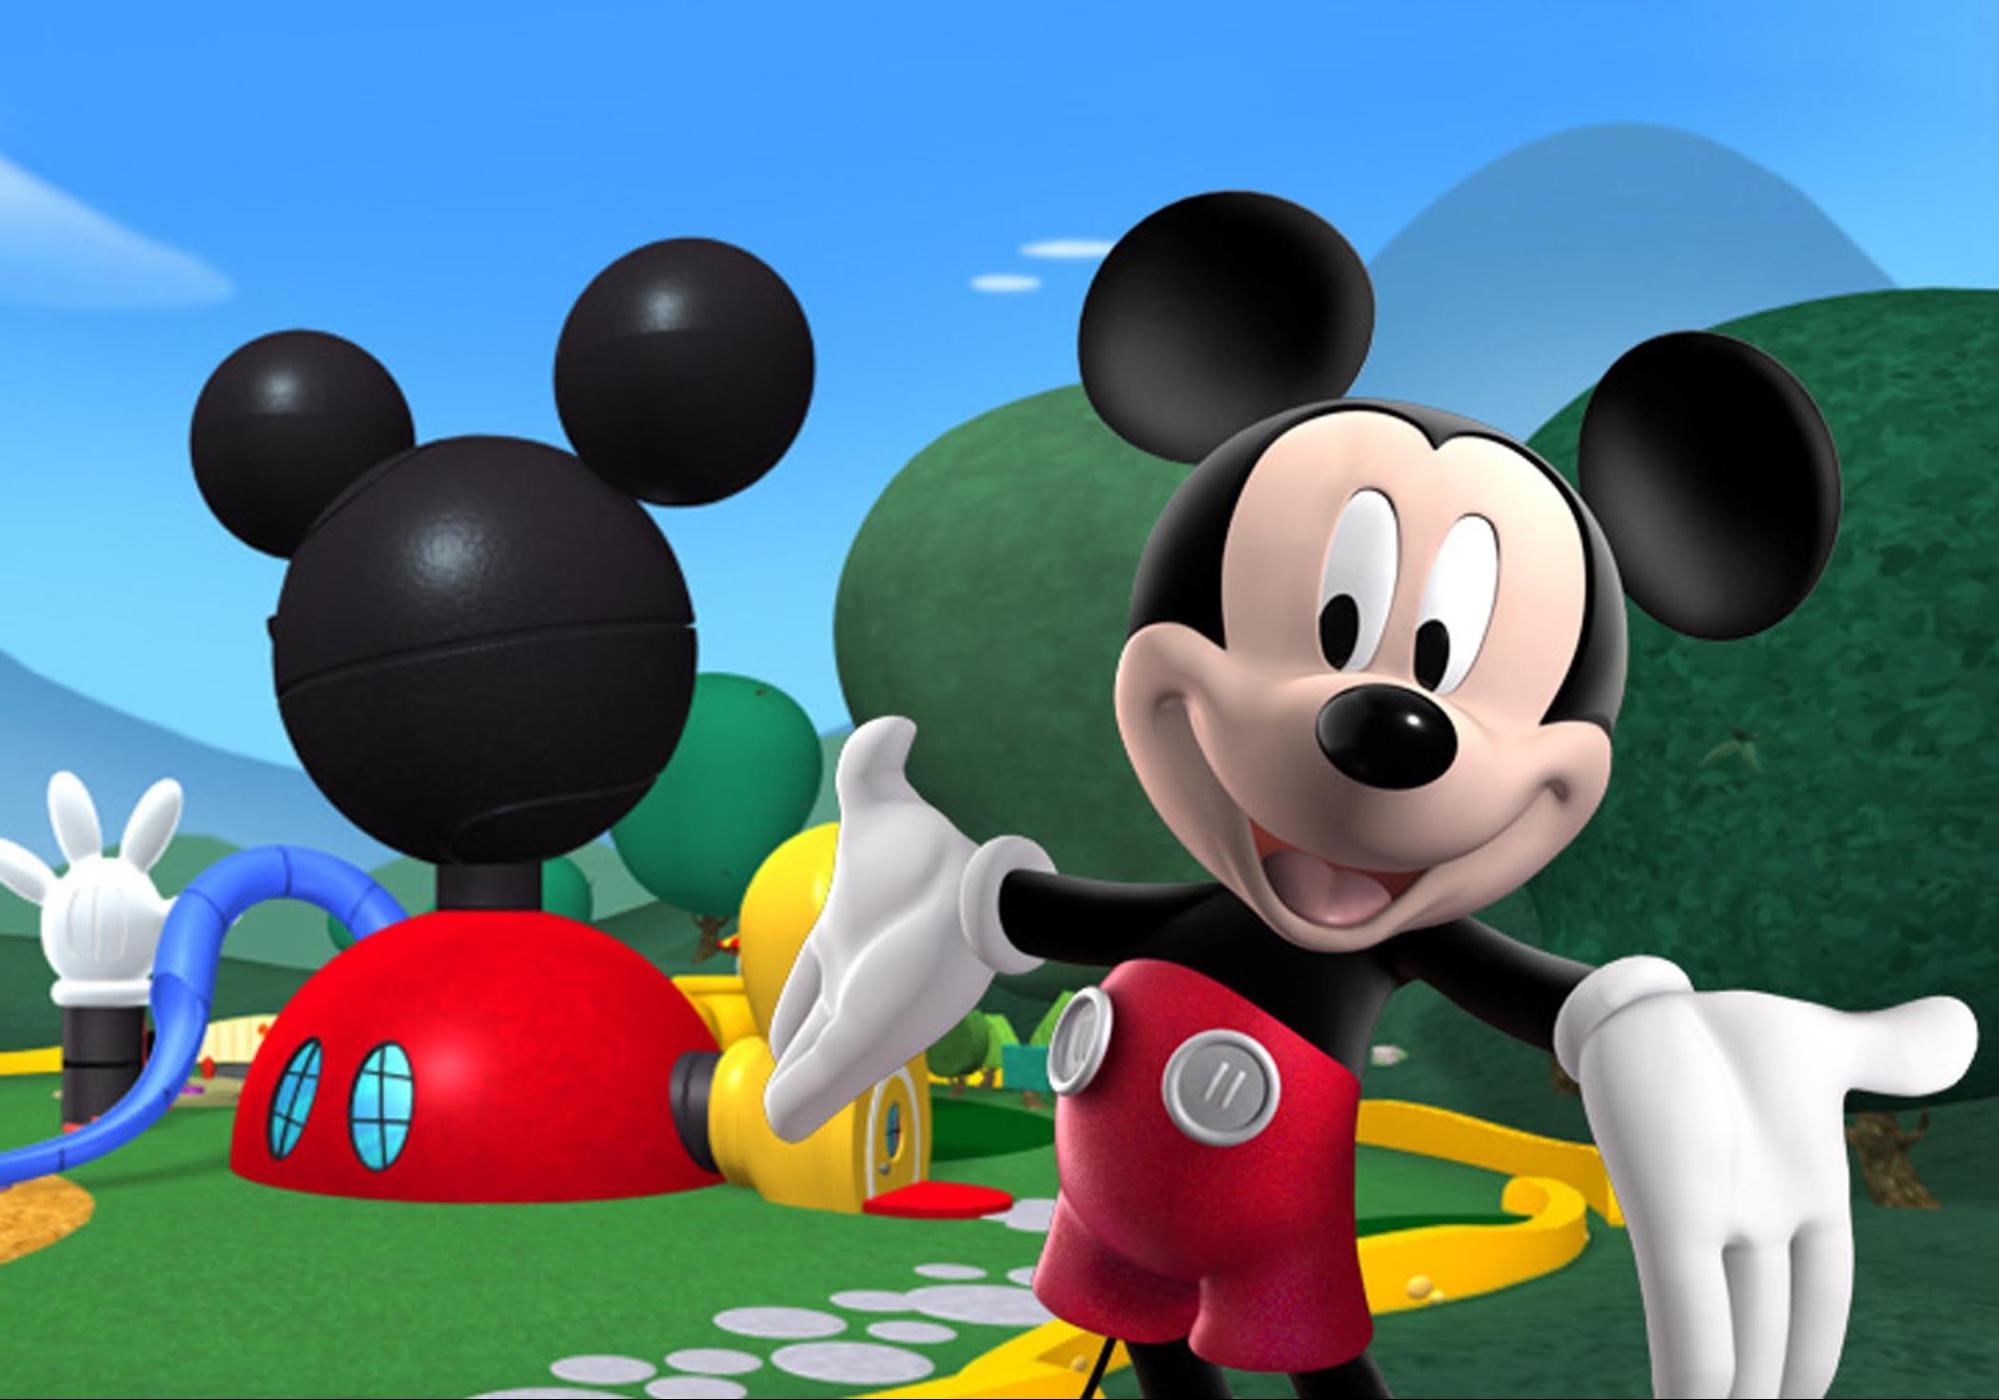 Best Disney Plus Shows For Toddlers - The Mickey Mouse Clubhouse